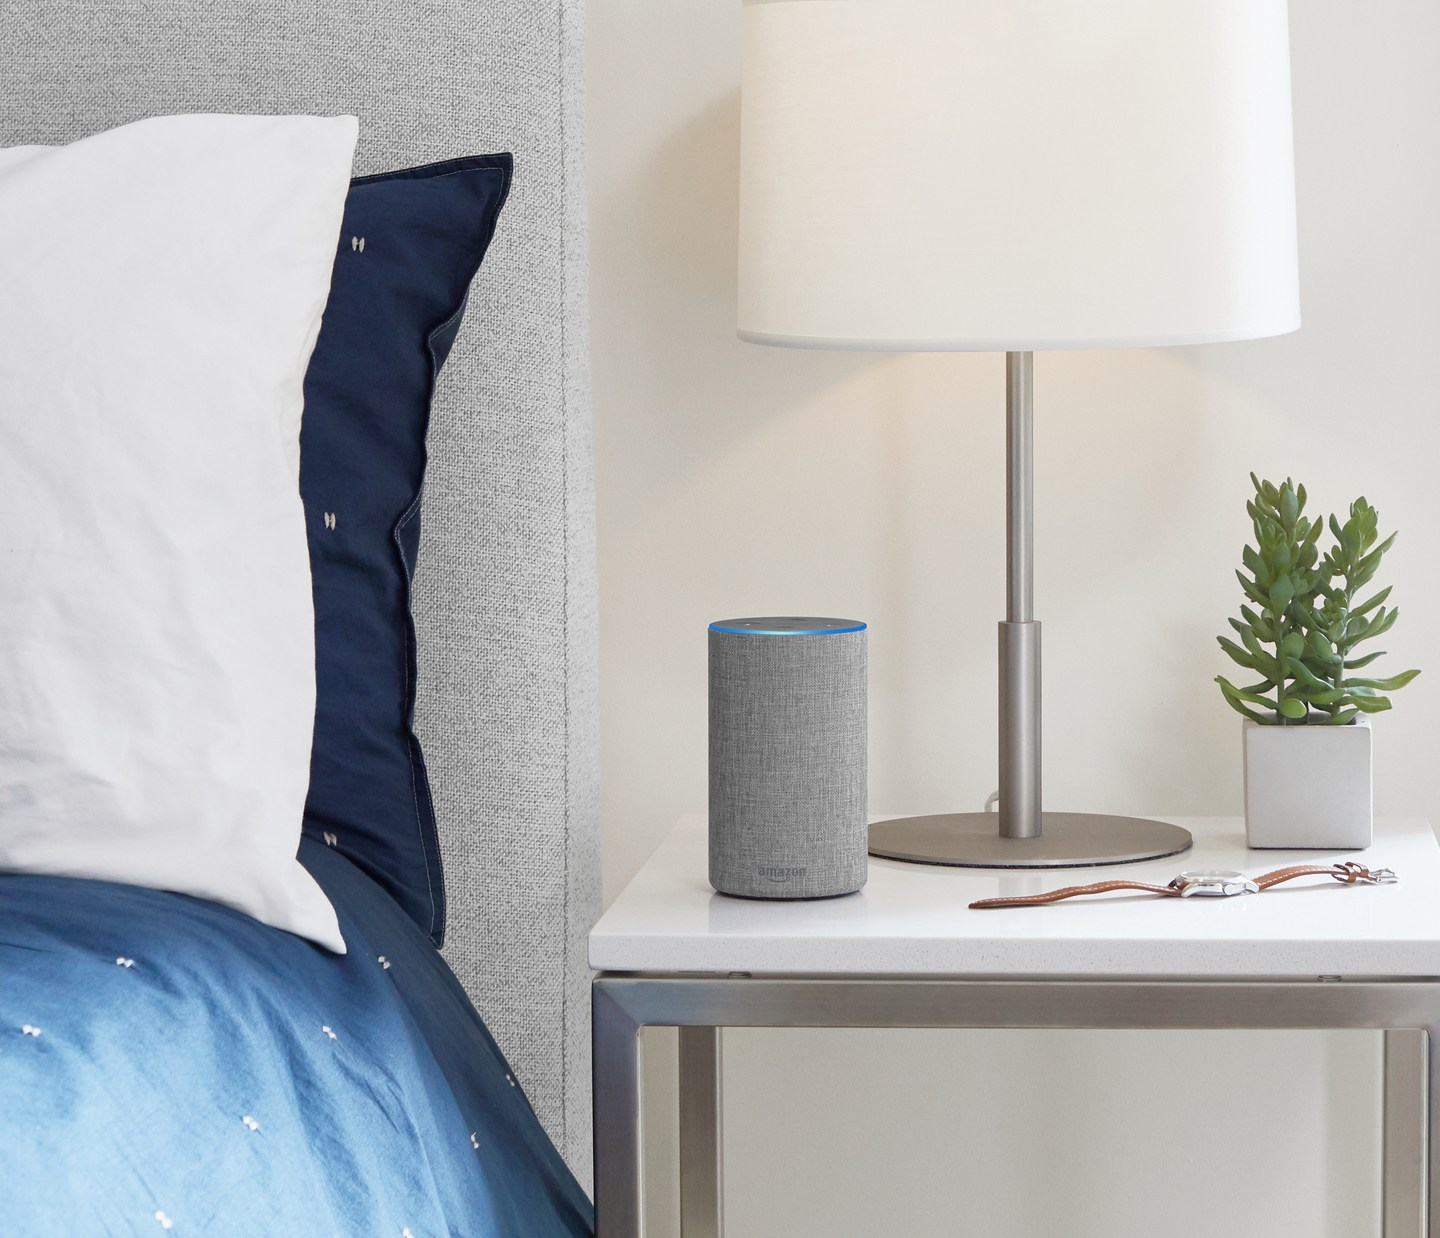 A grey Amazon Echo sits atop a nightstand